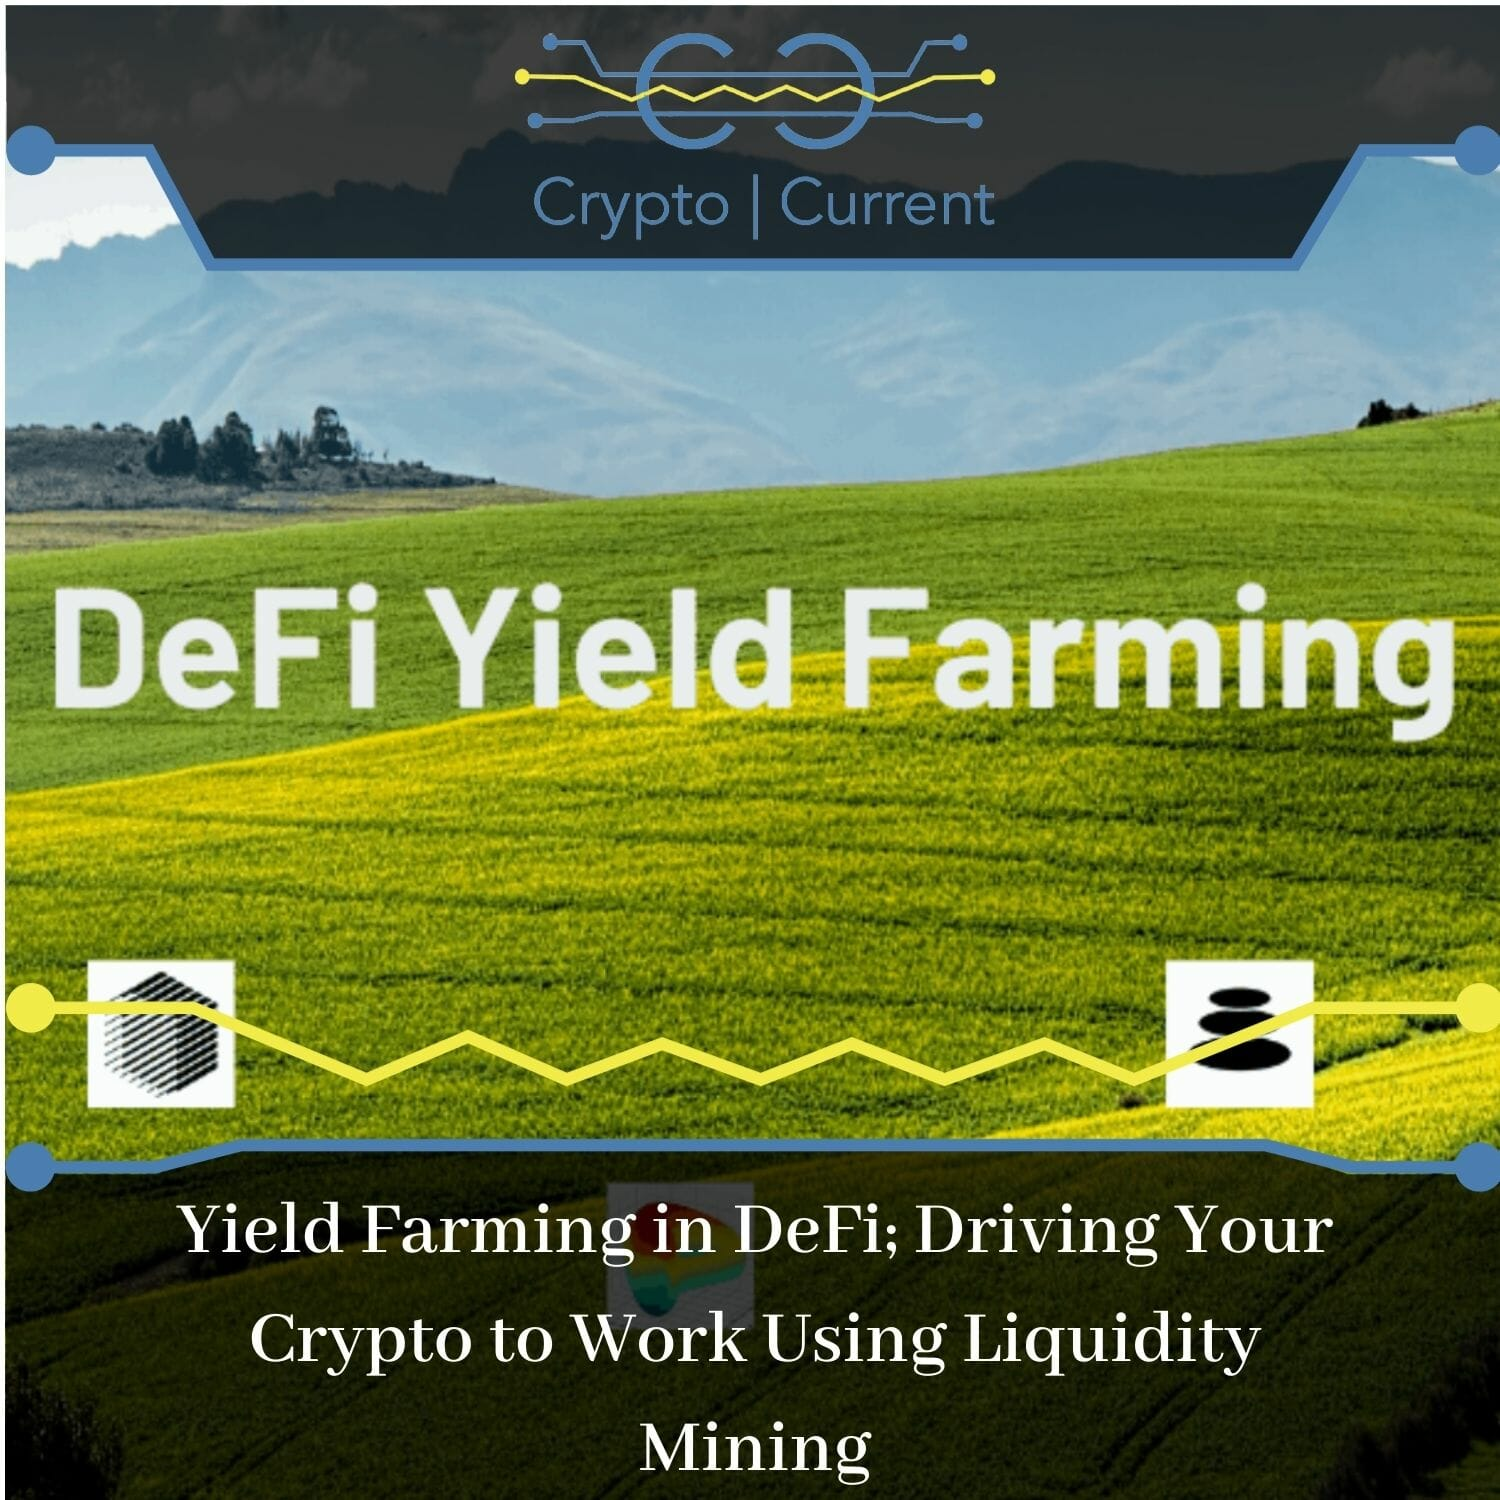 Yield Farming in DeFi; Driving Your Crypto to Work Using Liquidity Mining